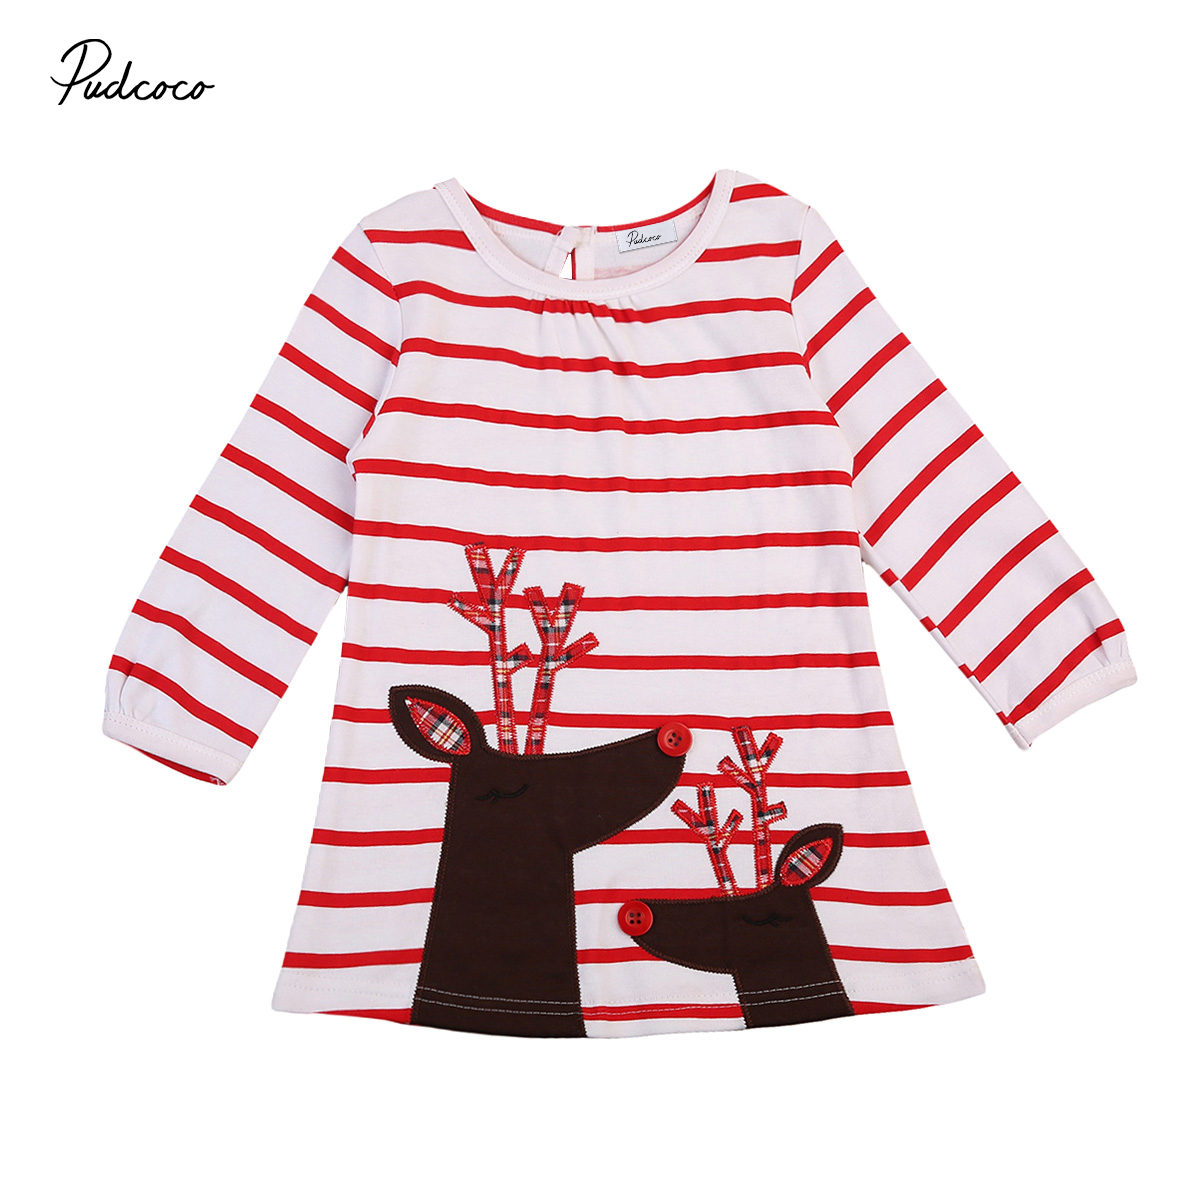 New Year Girls Clothes Christmas Girls Red Striped Cute deer dress Xmas dress Princess Dress Baby Cotton Dress children clothing hidden pocket striped dress